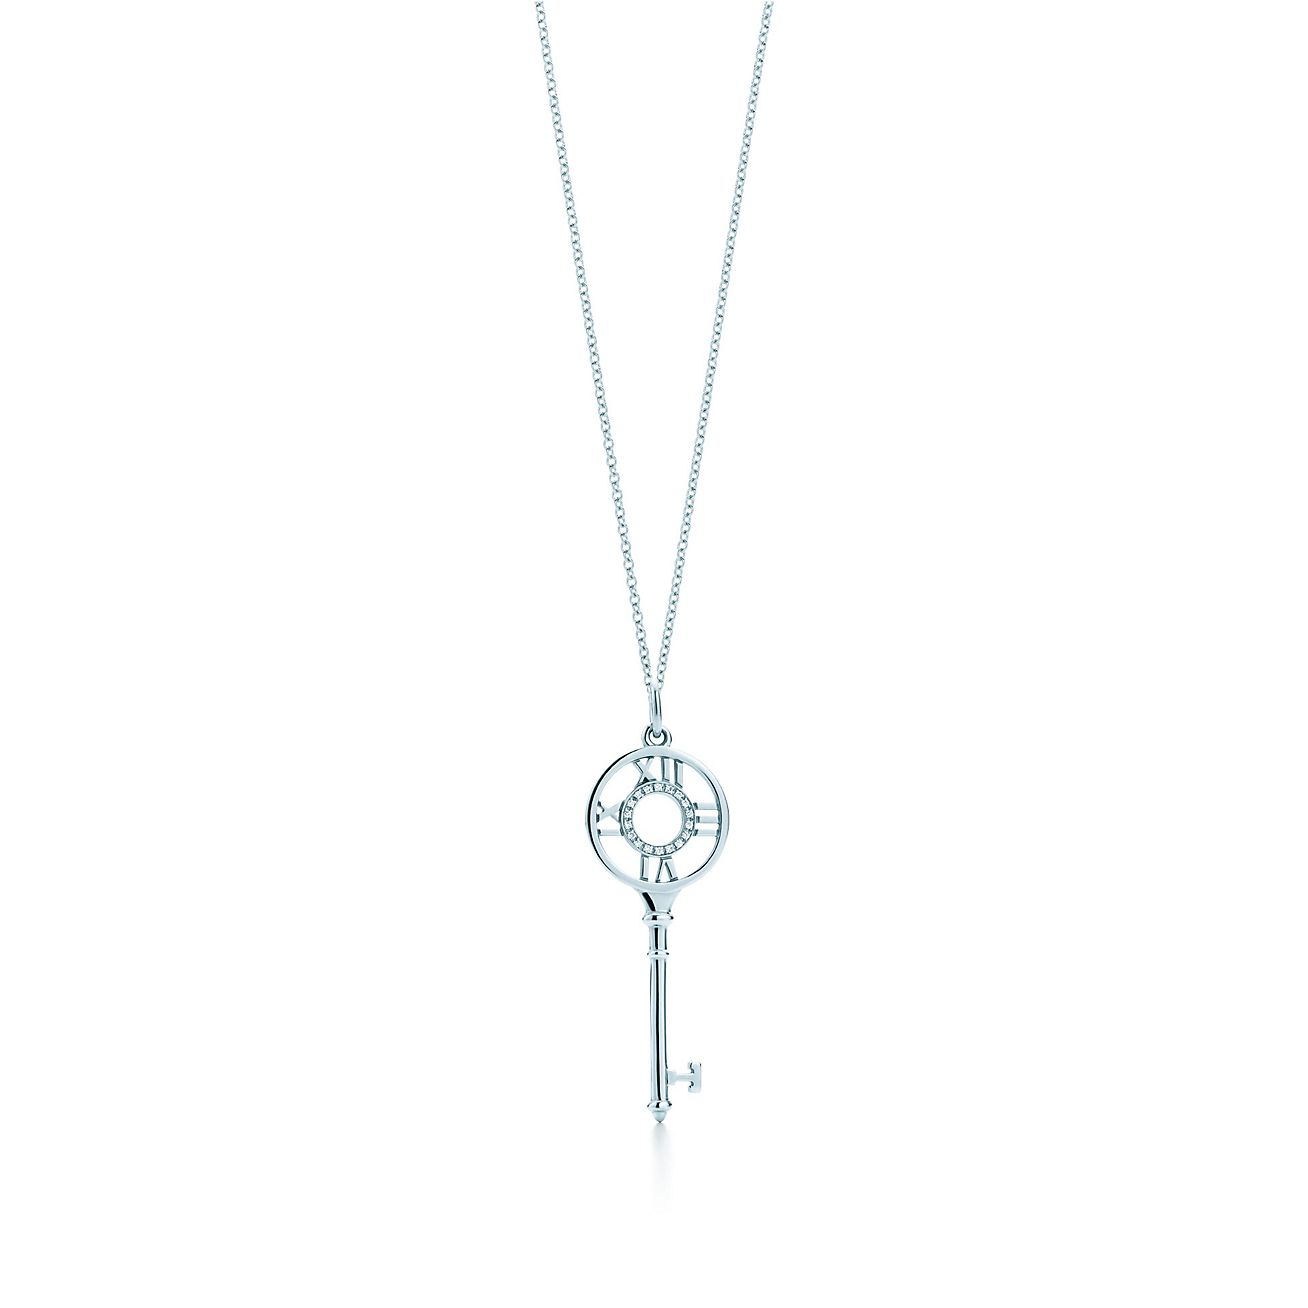 Tiffany keys atlas key pendant in 18k white gold with diamonds tiffany keysatlas key pendant aloadofball